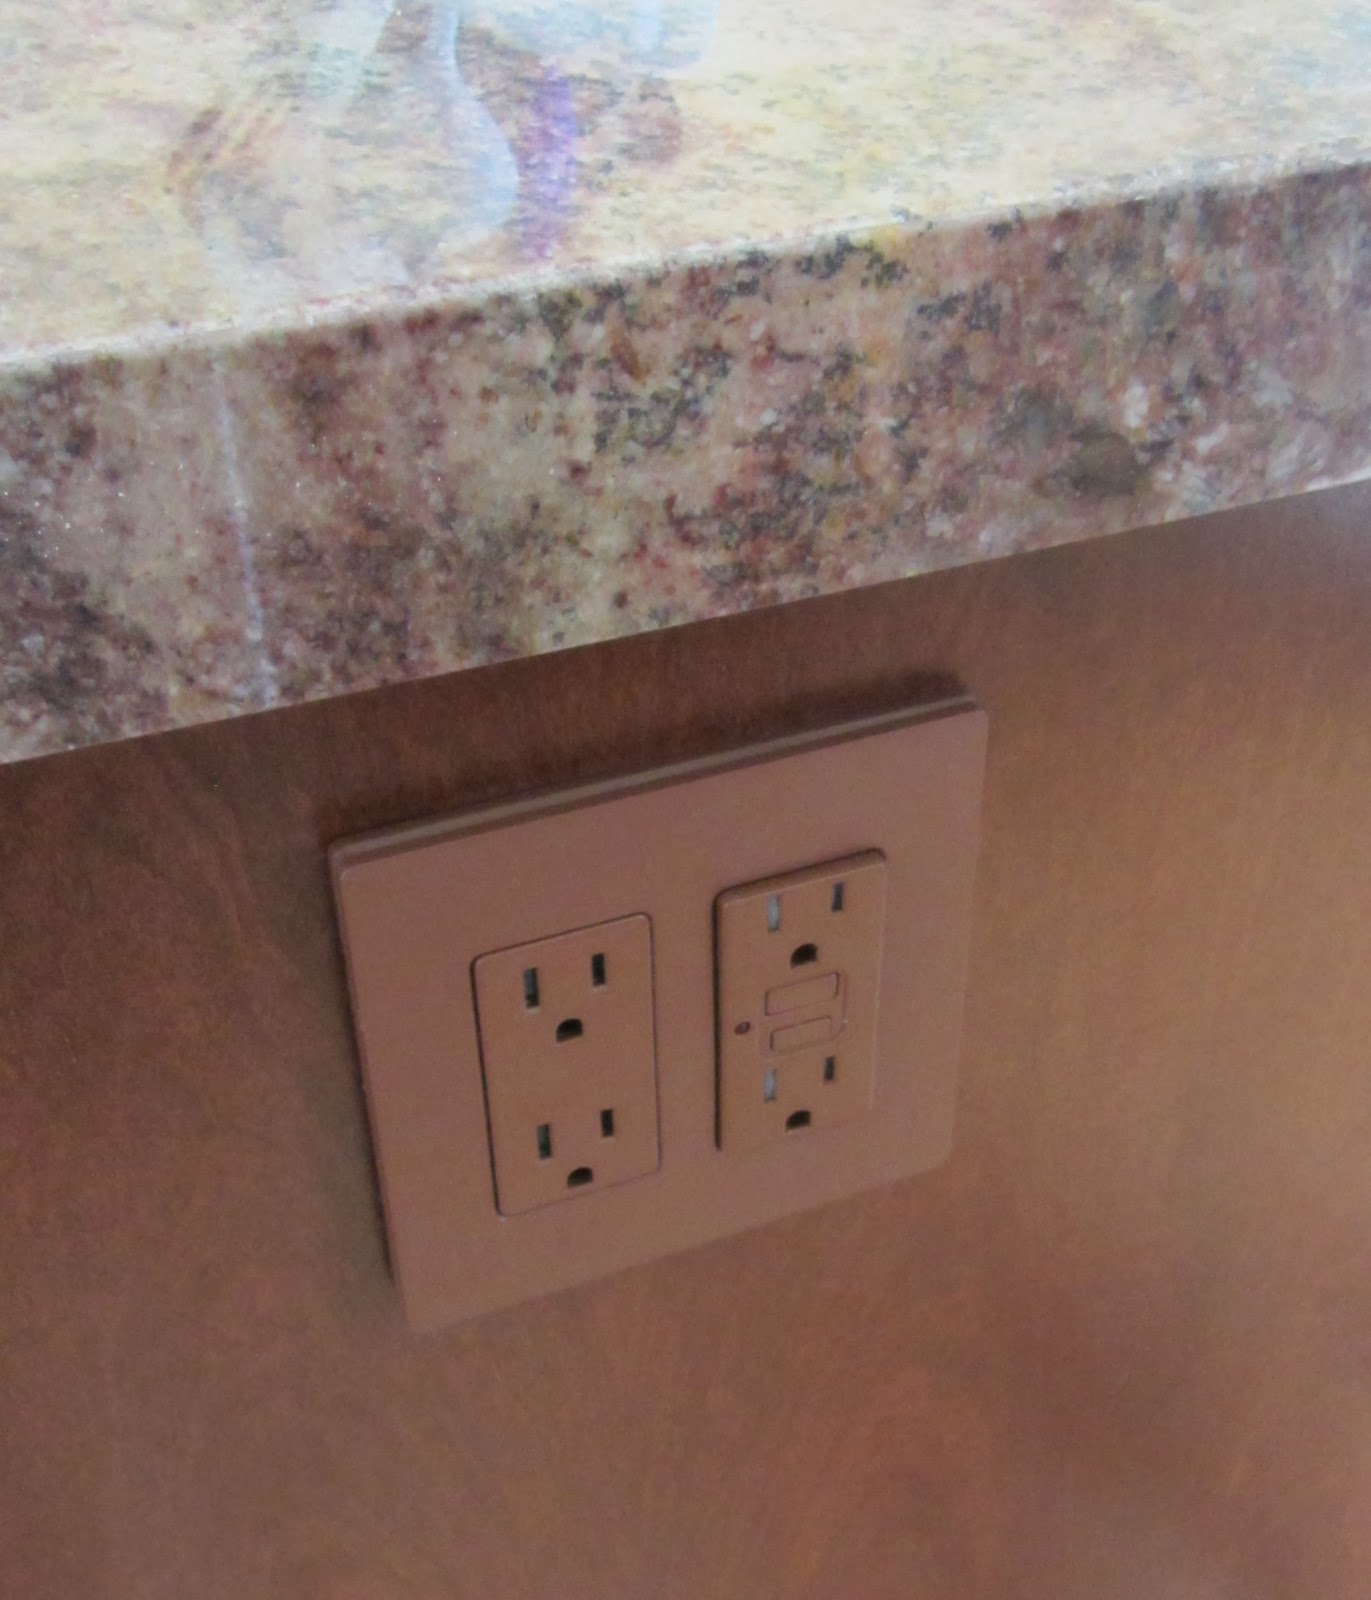 Kitchen Island Outlet Wear Enzy Living Alternatives To Ugly Outlets In Islands